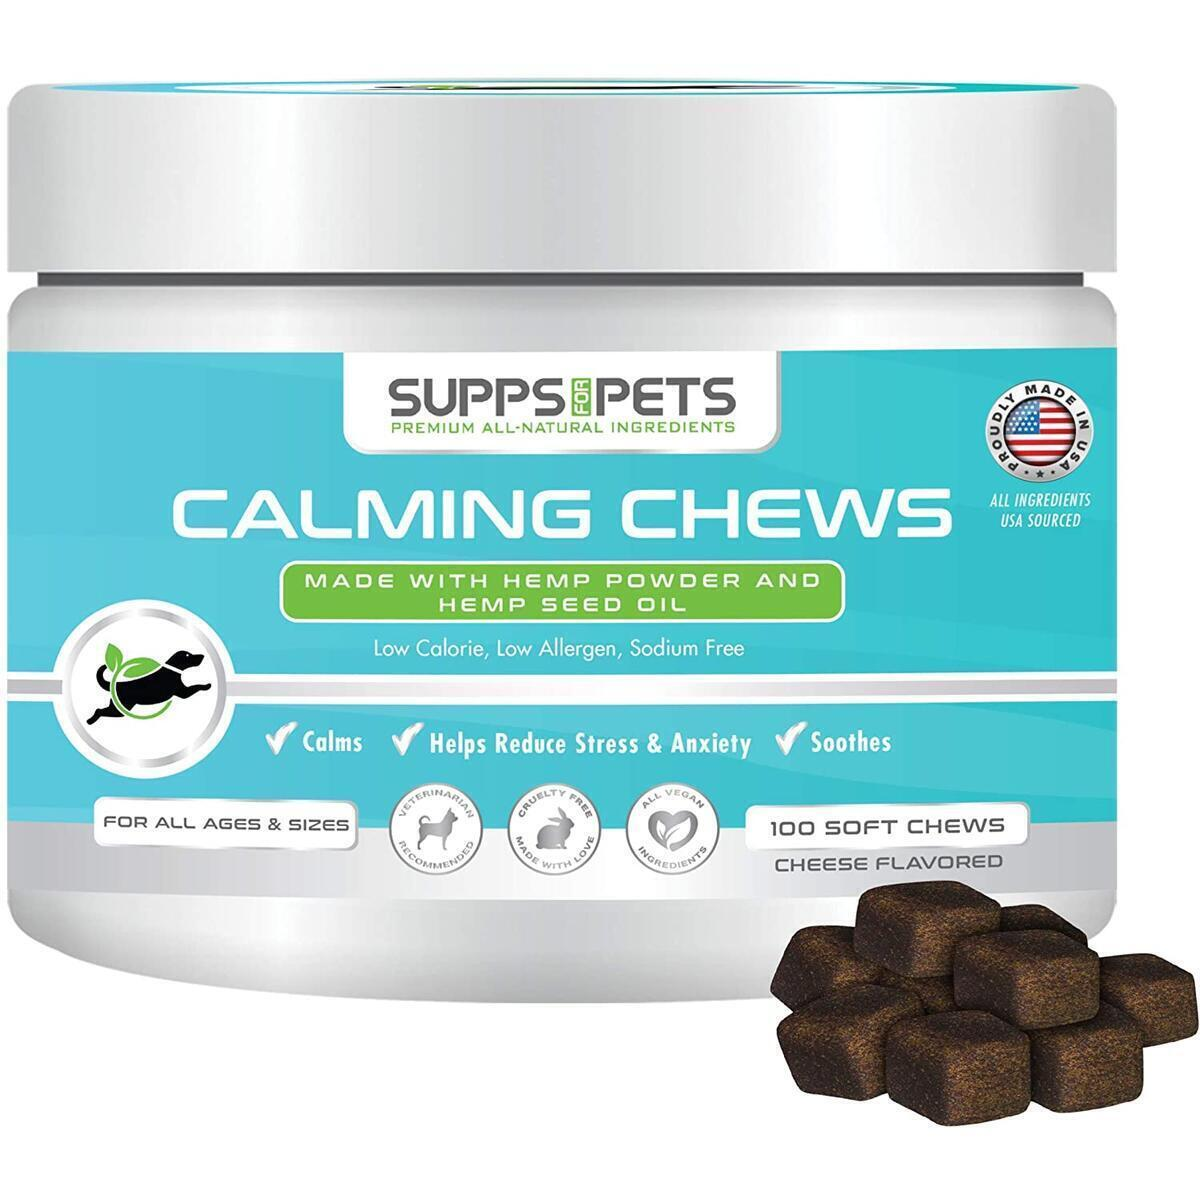 Calming Organic Hemp Chews for Dogs – Anxiety Relief Treats with Hemp Powder, Hemp Seed Oil and Melatonin – Low Cal, Low Allergen Cheese Flavored Bites for All Breeds and Sizes (100 Chews)